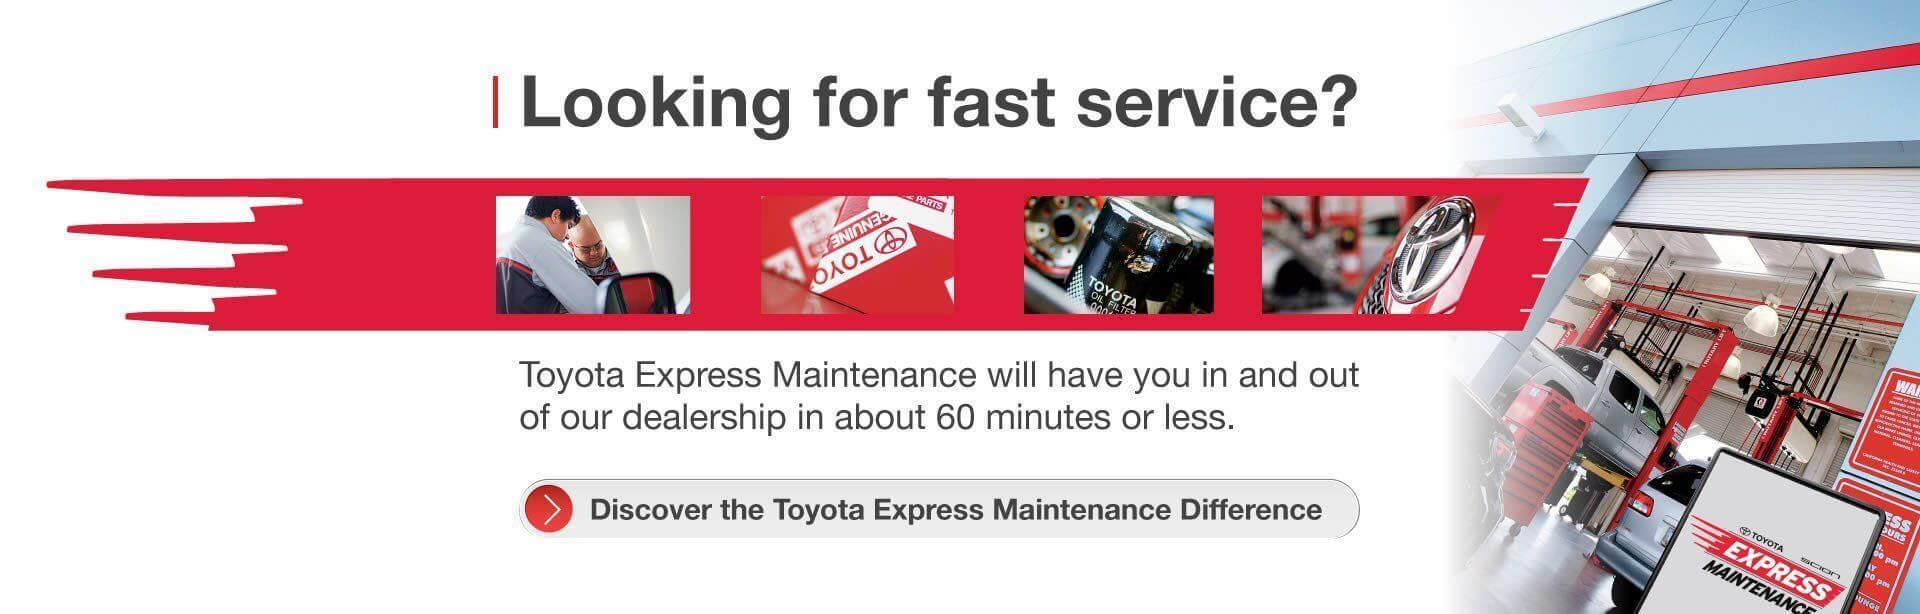 Looking for Faster Service